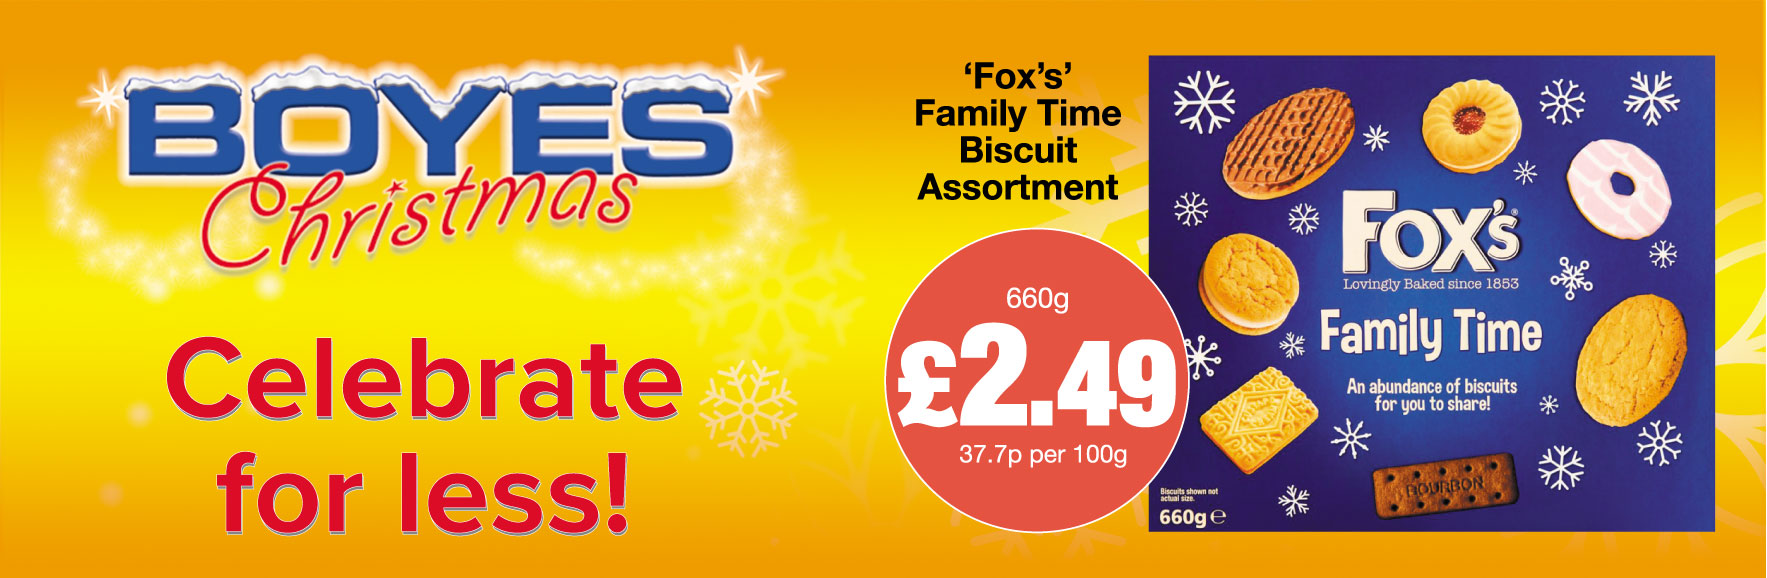 Fox's Family Time Biscuit Assortment £2.49